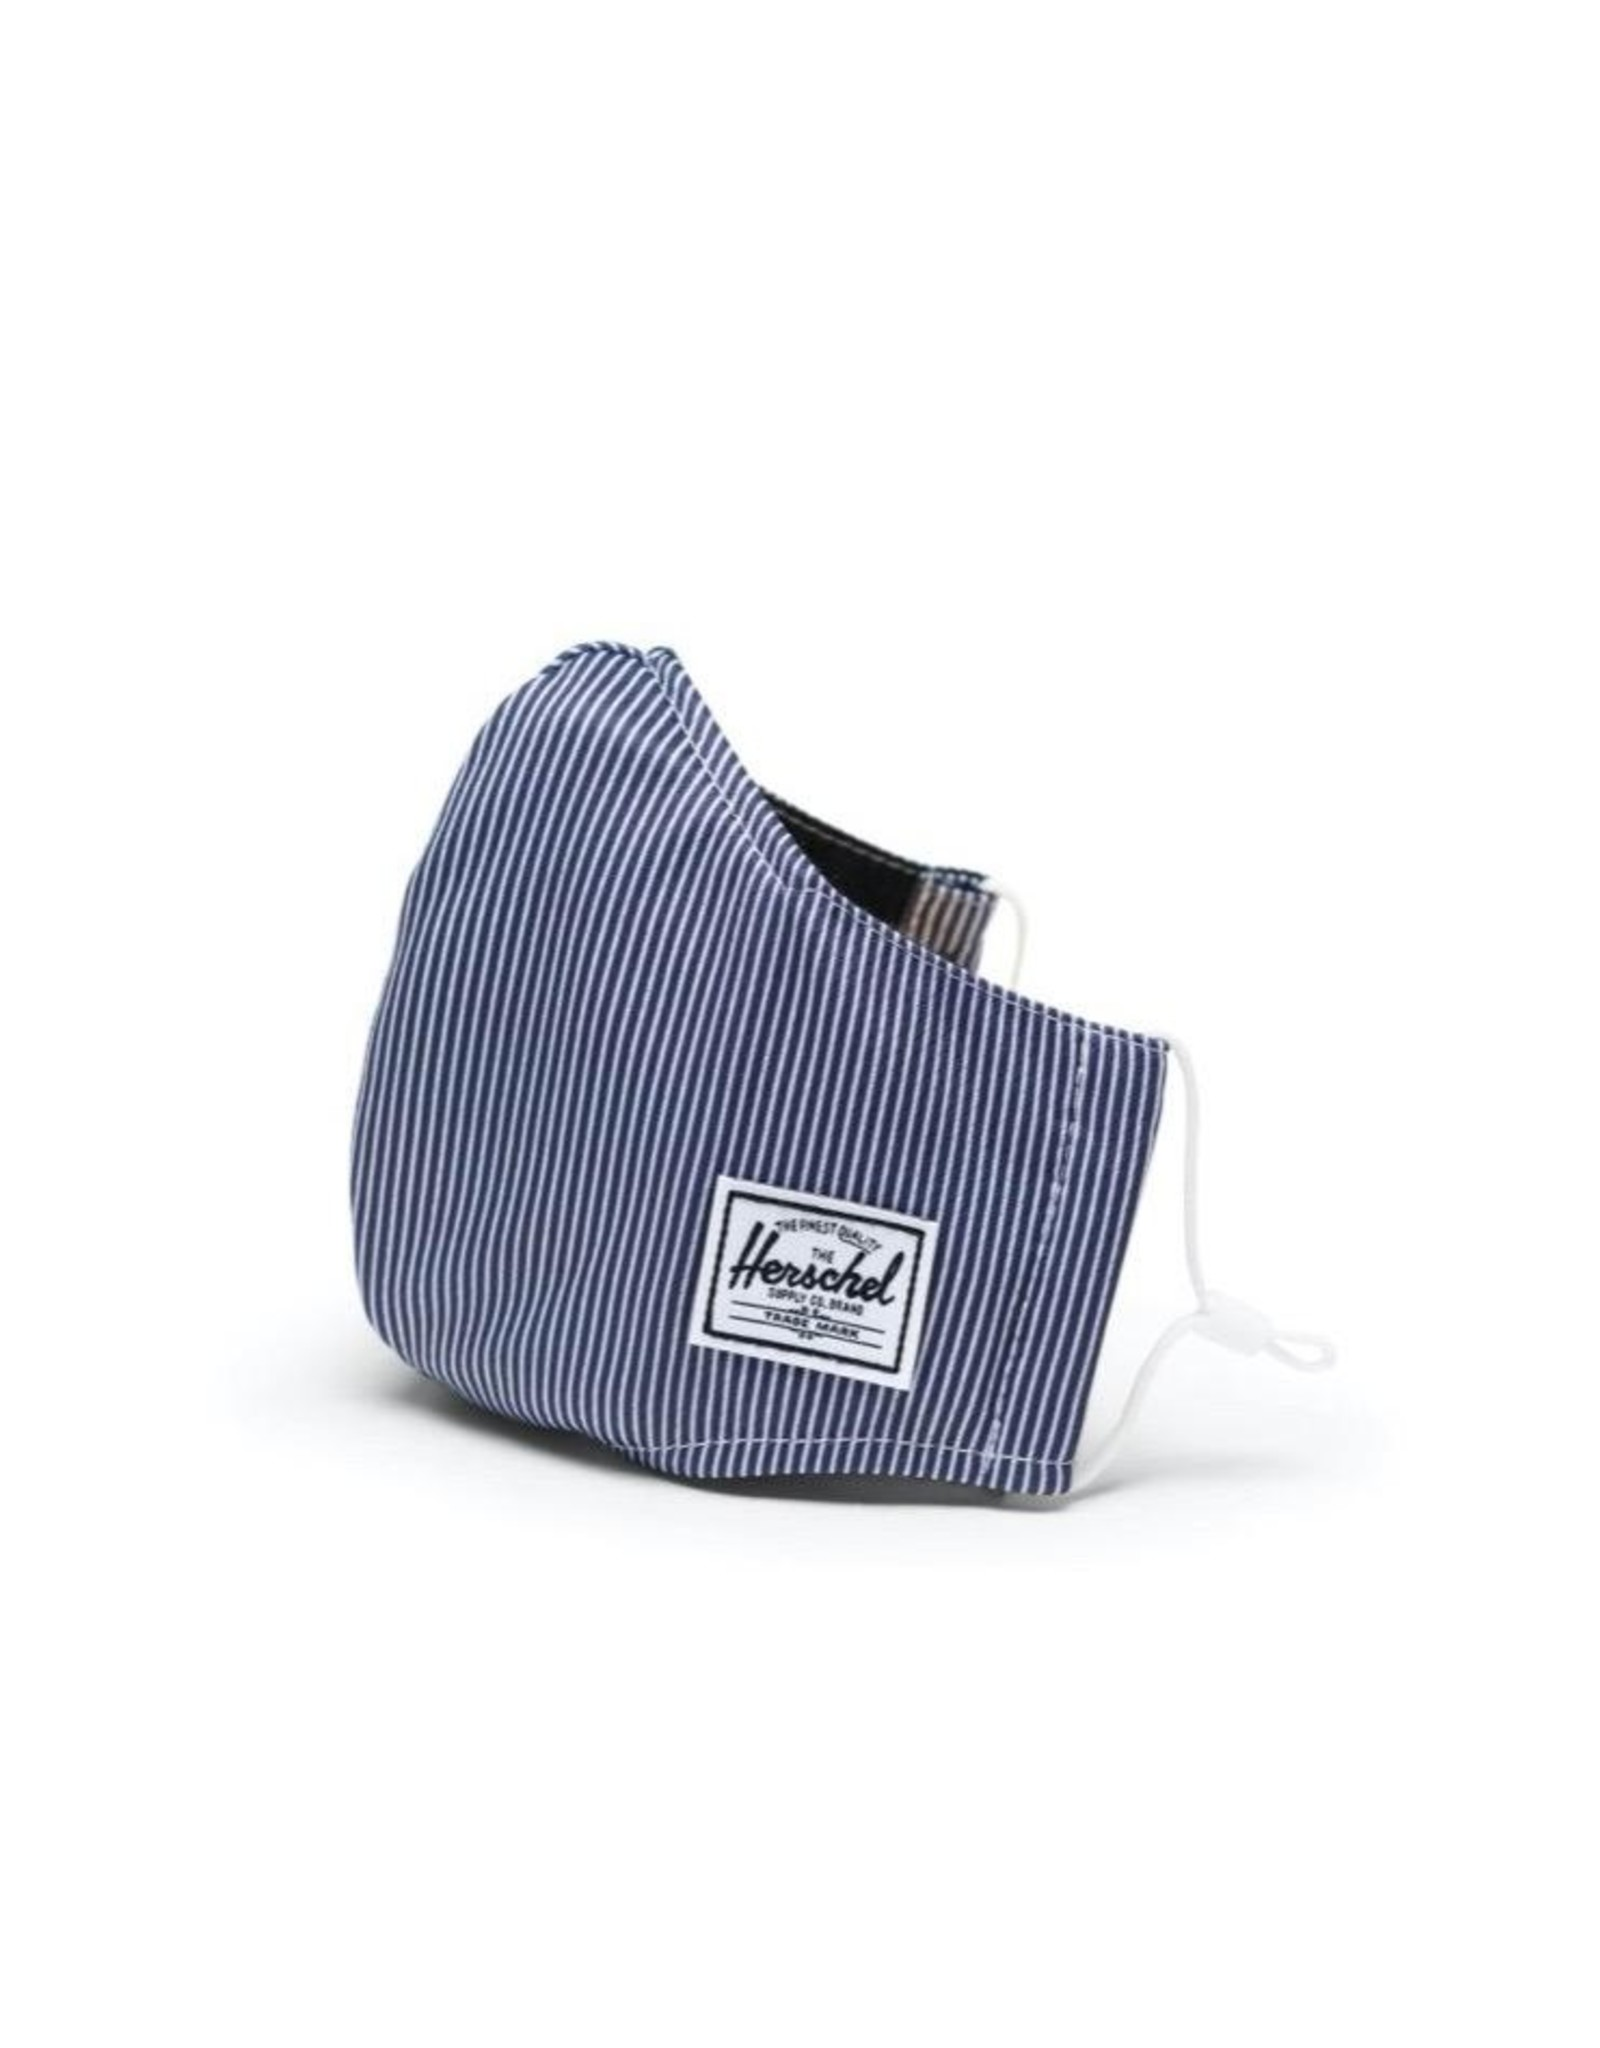 Herschel Supply Co. Classic Fitted Face Mask, Adult, Peacoat